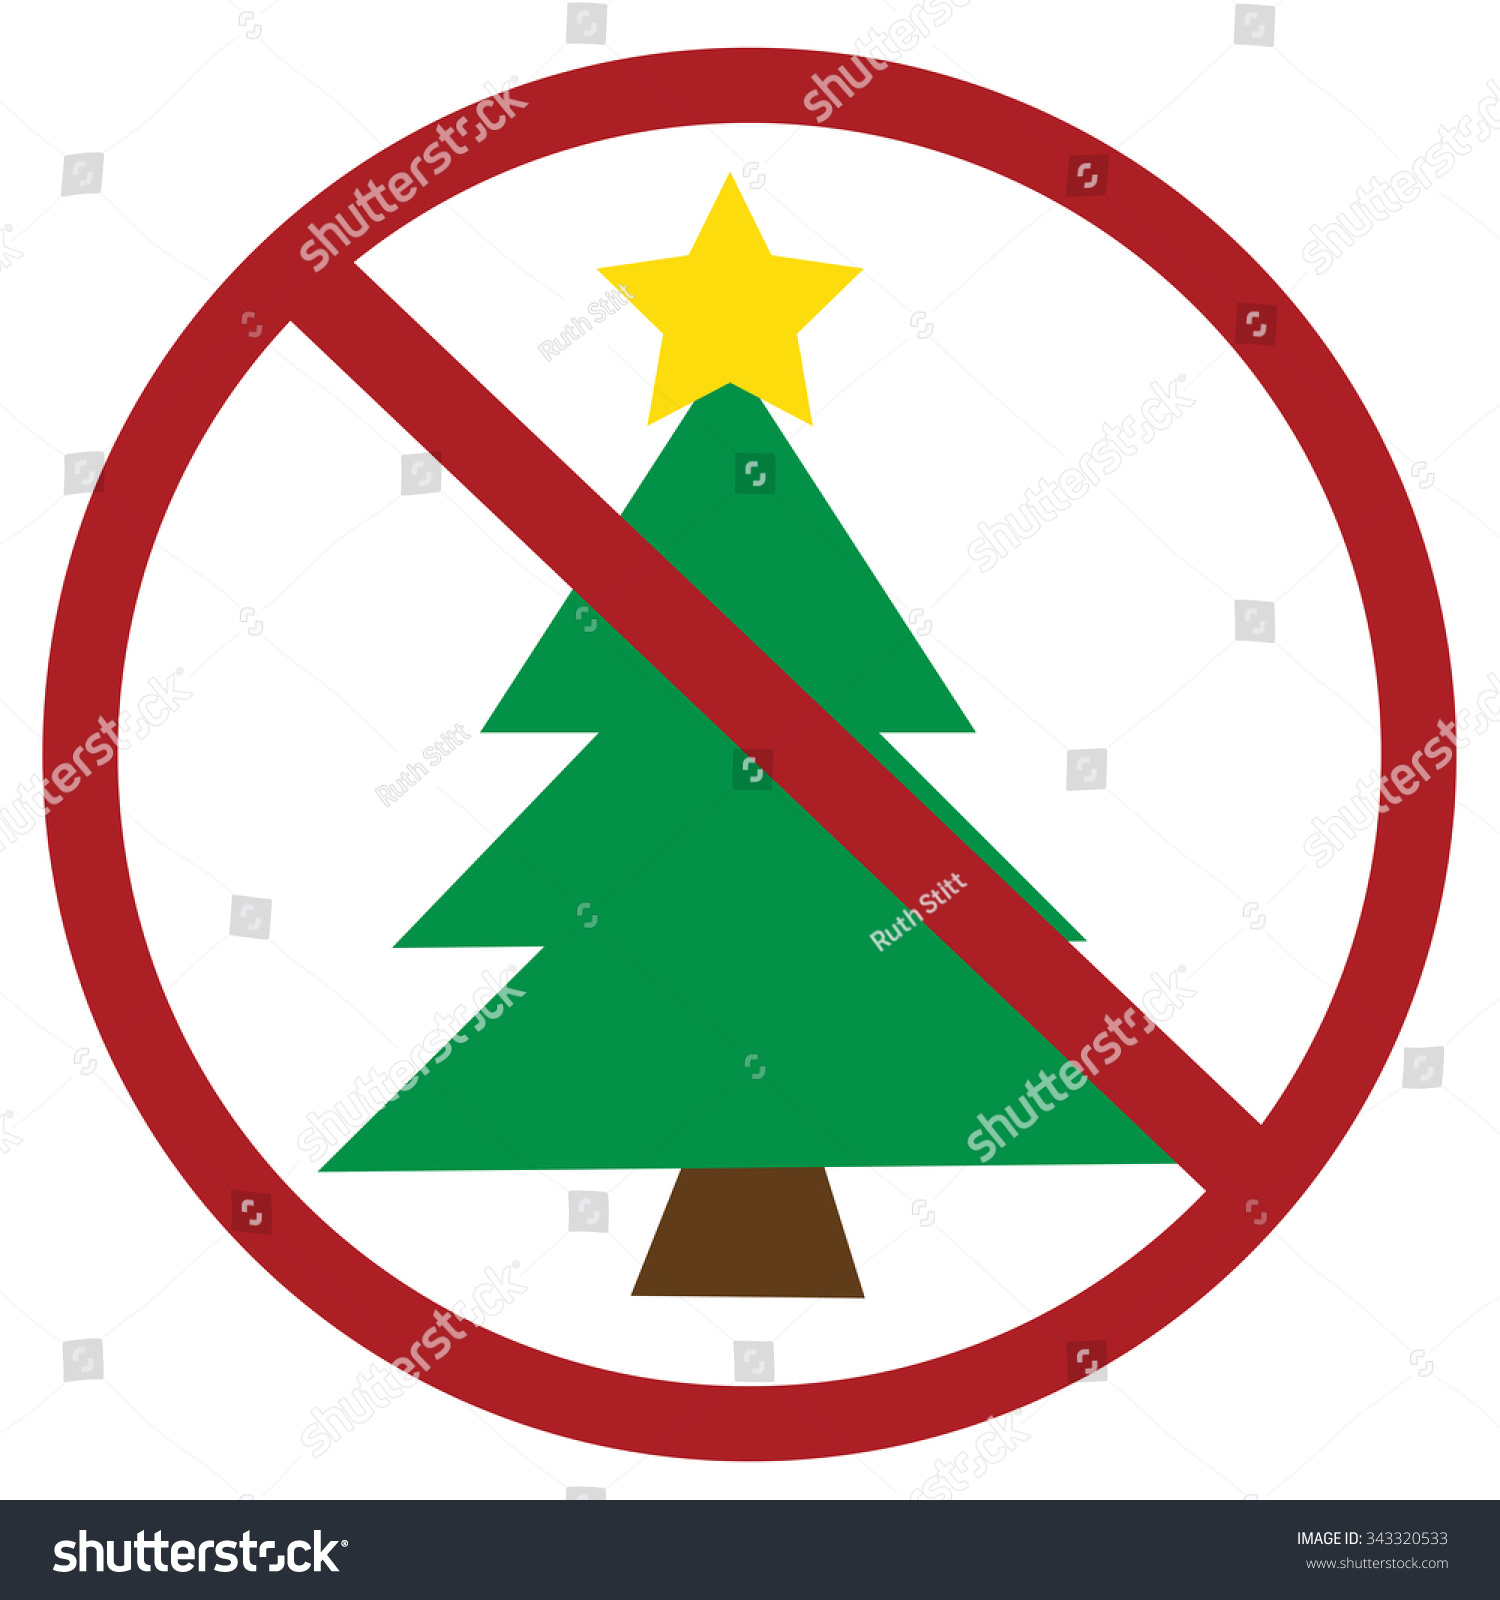 No Christmas Stock Vector (Royalty Free) 343320533 - Shutterstock